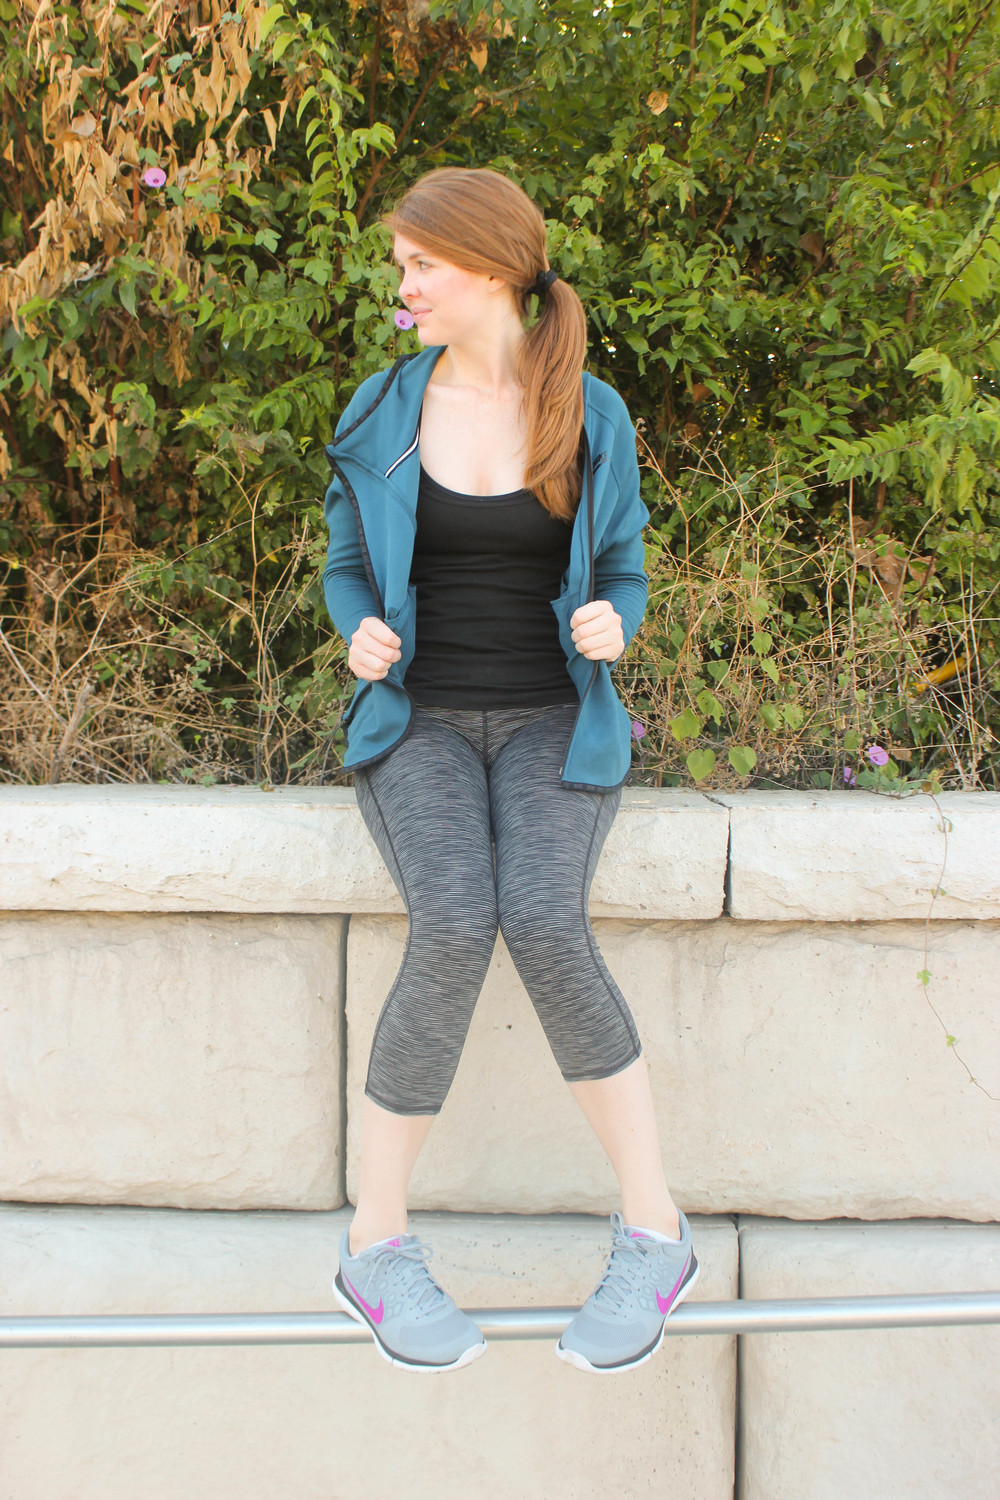 Nike Jacket, Athleta Tights | Southern Elle Style | Dallas Fashion Blogger